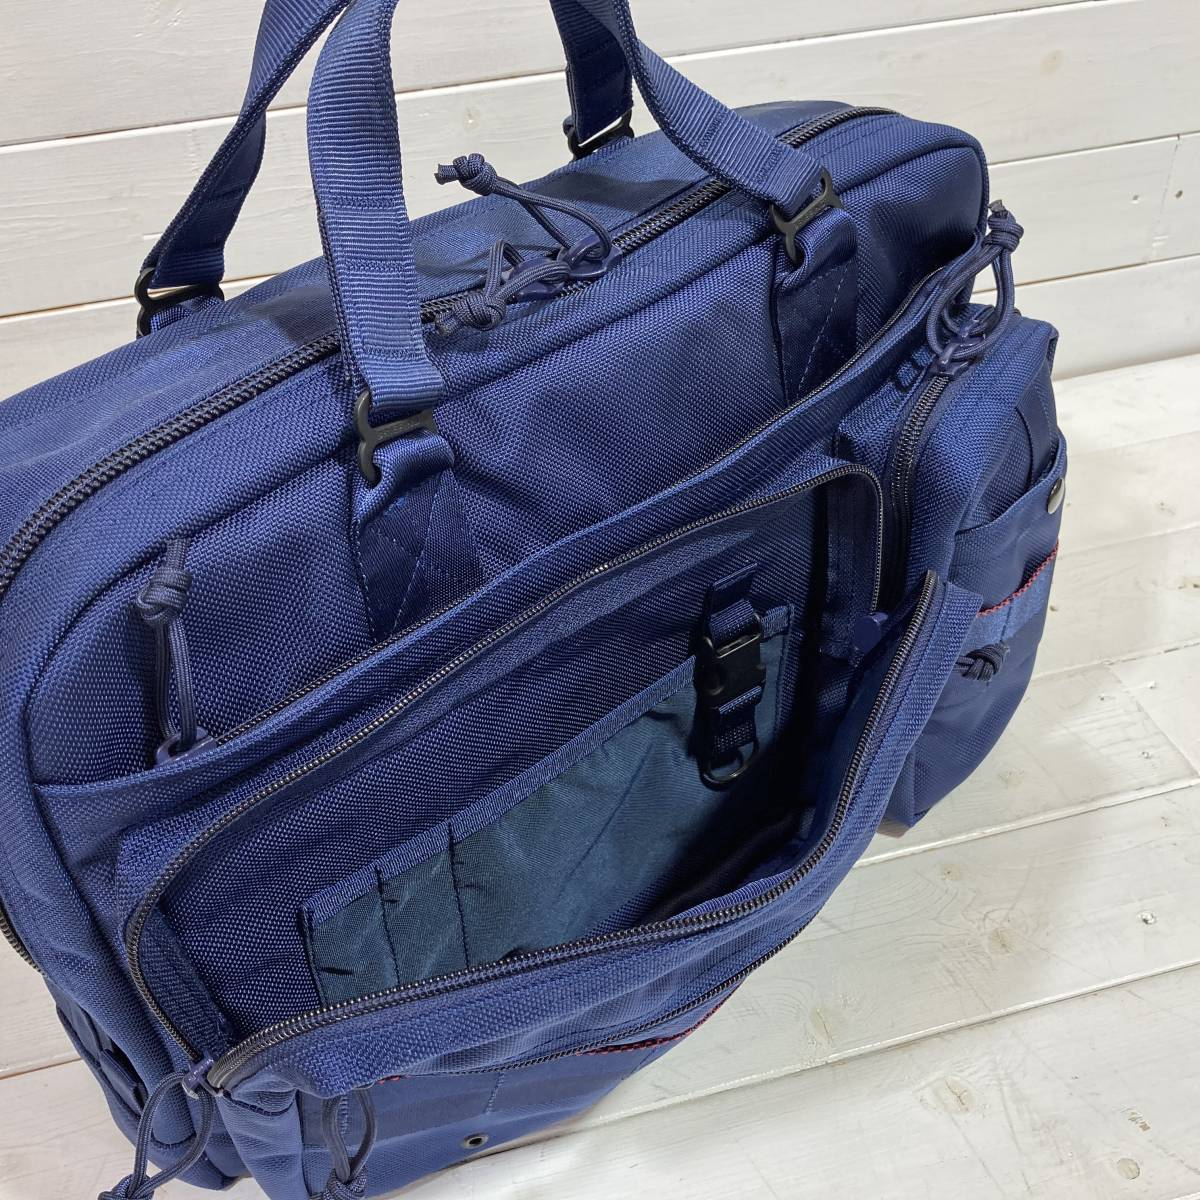 BRIEFING × BEAMS PLUS ブリーフィング × ビームス 別注 AIR FORCE BLUE LINE NEO B4 LINER ショルダーバッグ ブリーフケース A2-2127_画像4